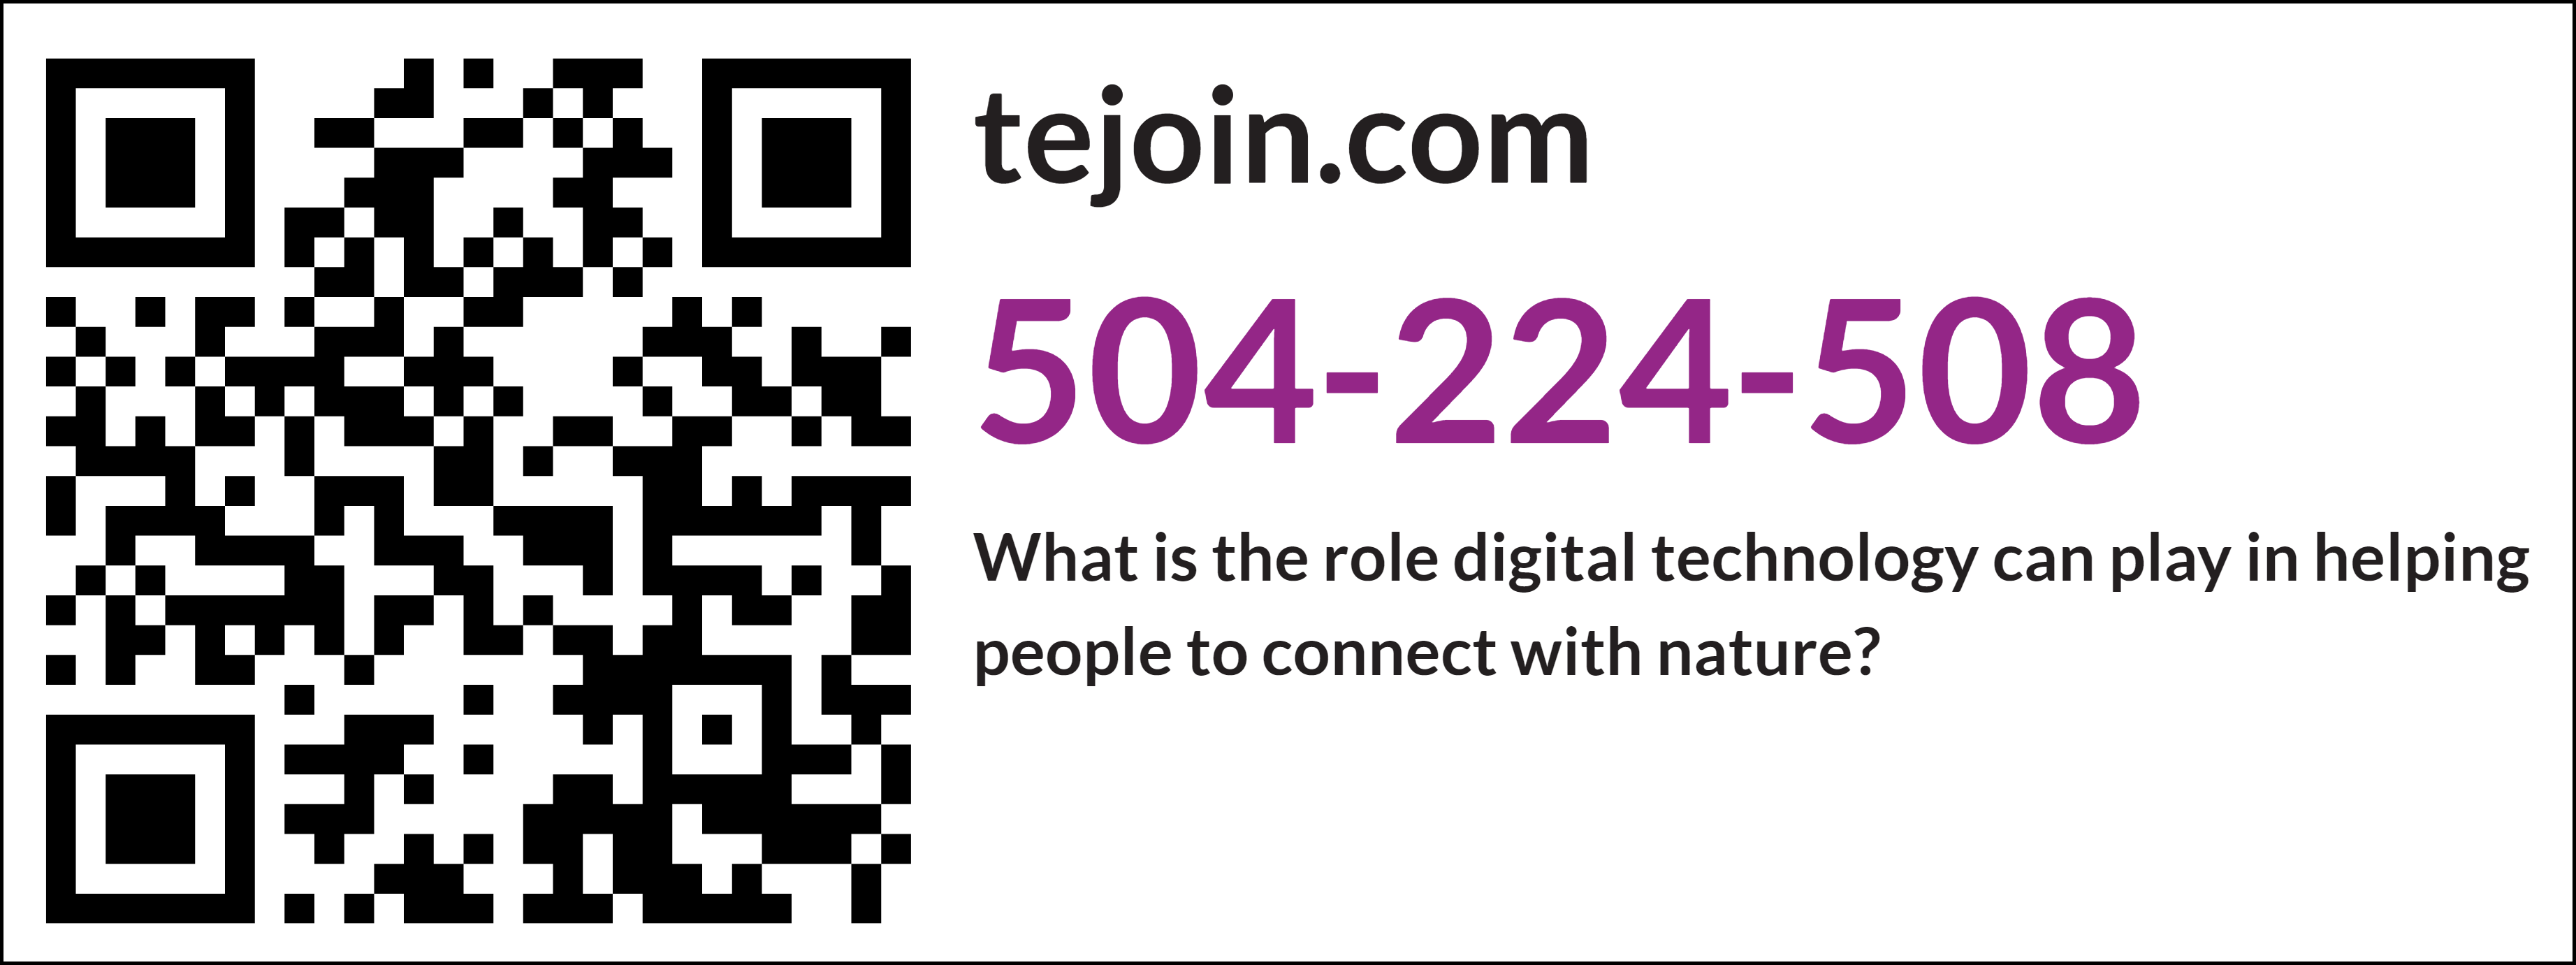 tejoin.com 504-224-508 what is the role digital technology can play in helping connect people to nature